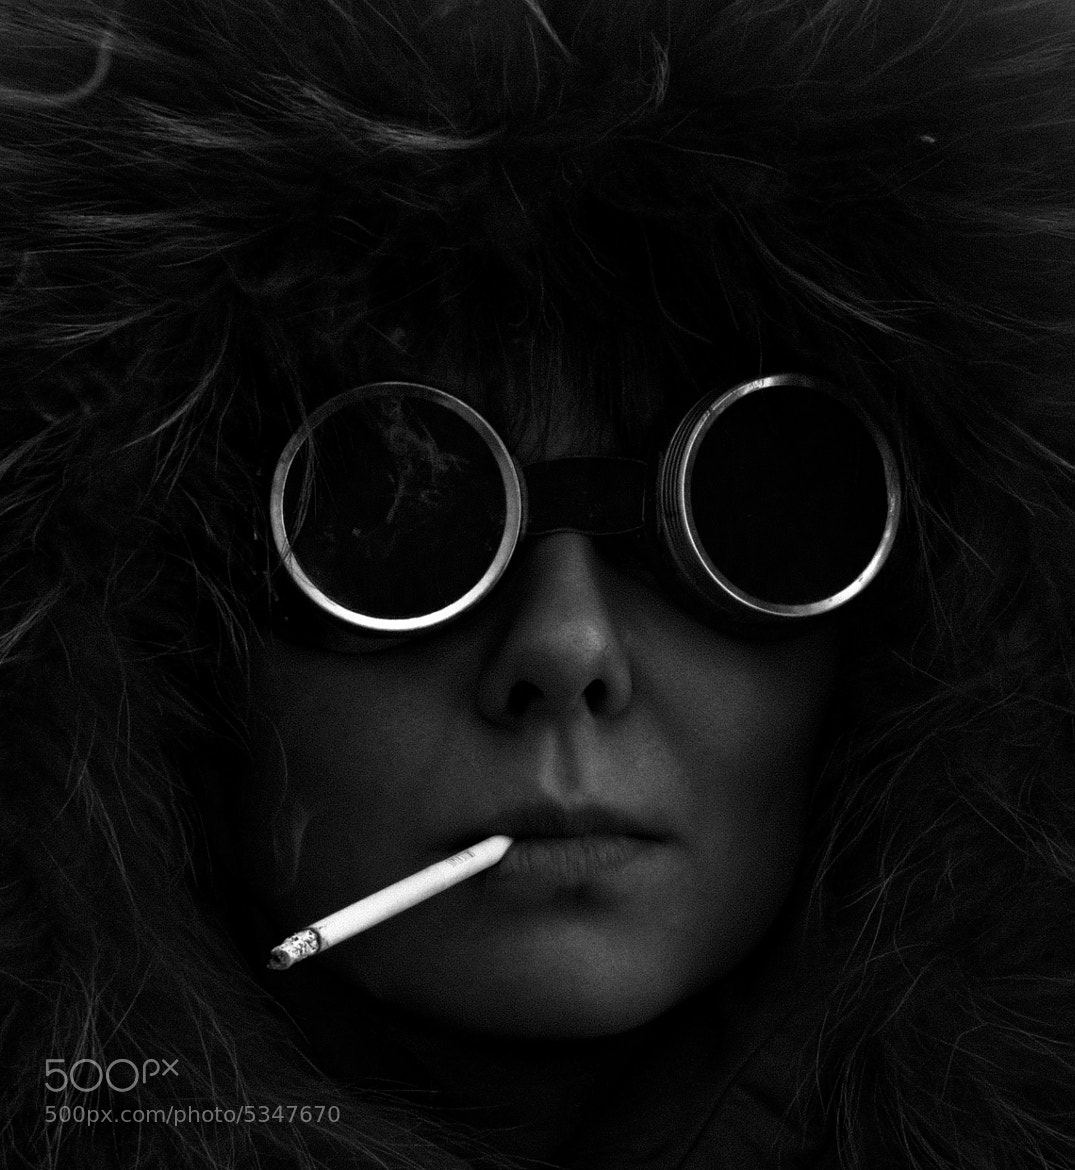 Photograph dark by Konstantin Floyd on 500px